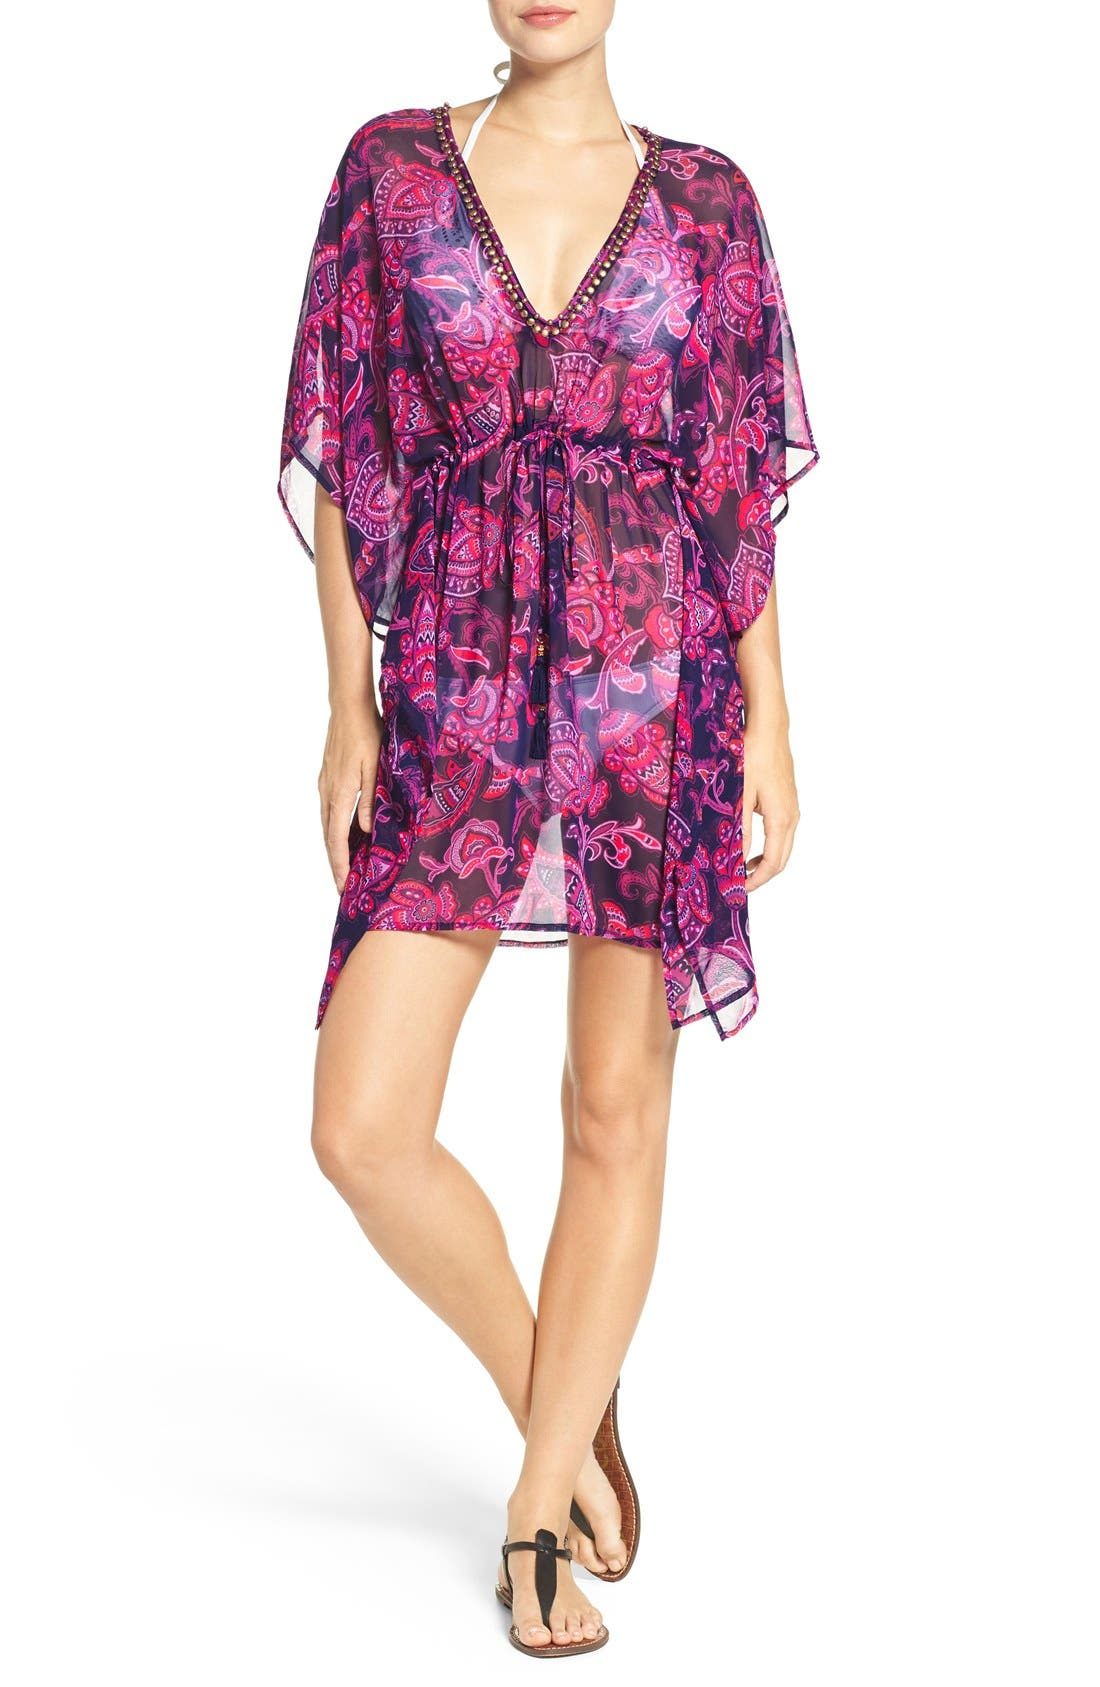 TOMMY BAHAMA 'Jacobean' Beaded Neck Cover-Up Tunic